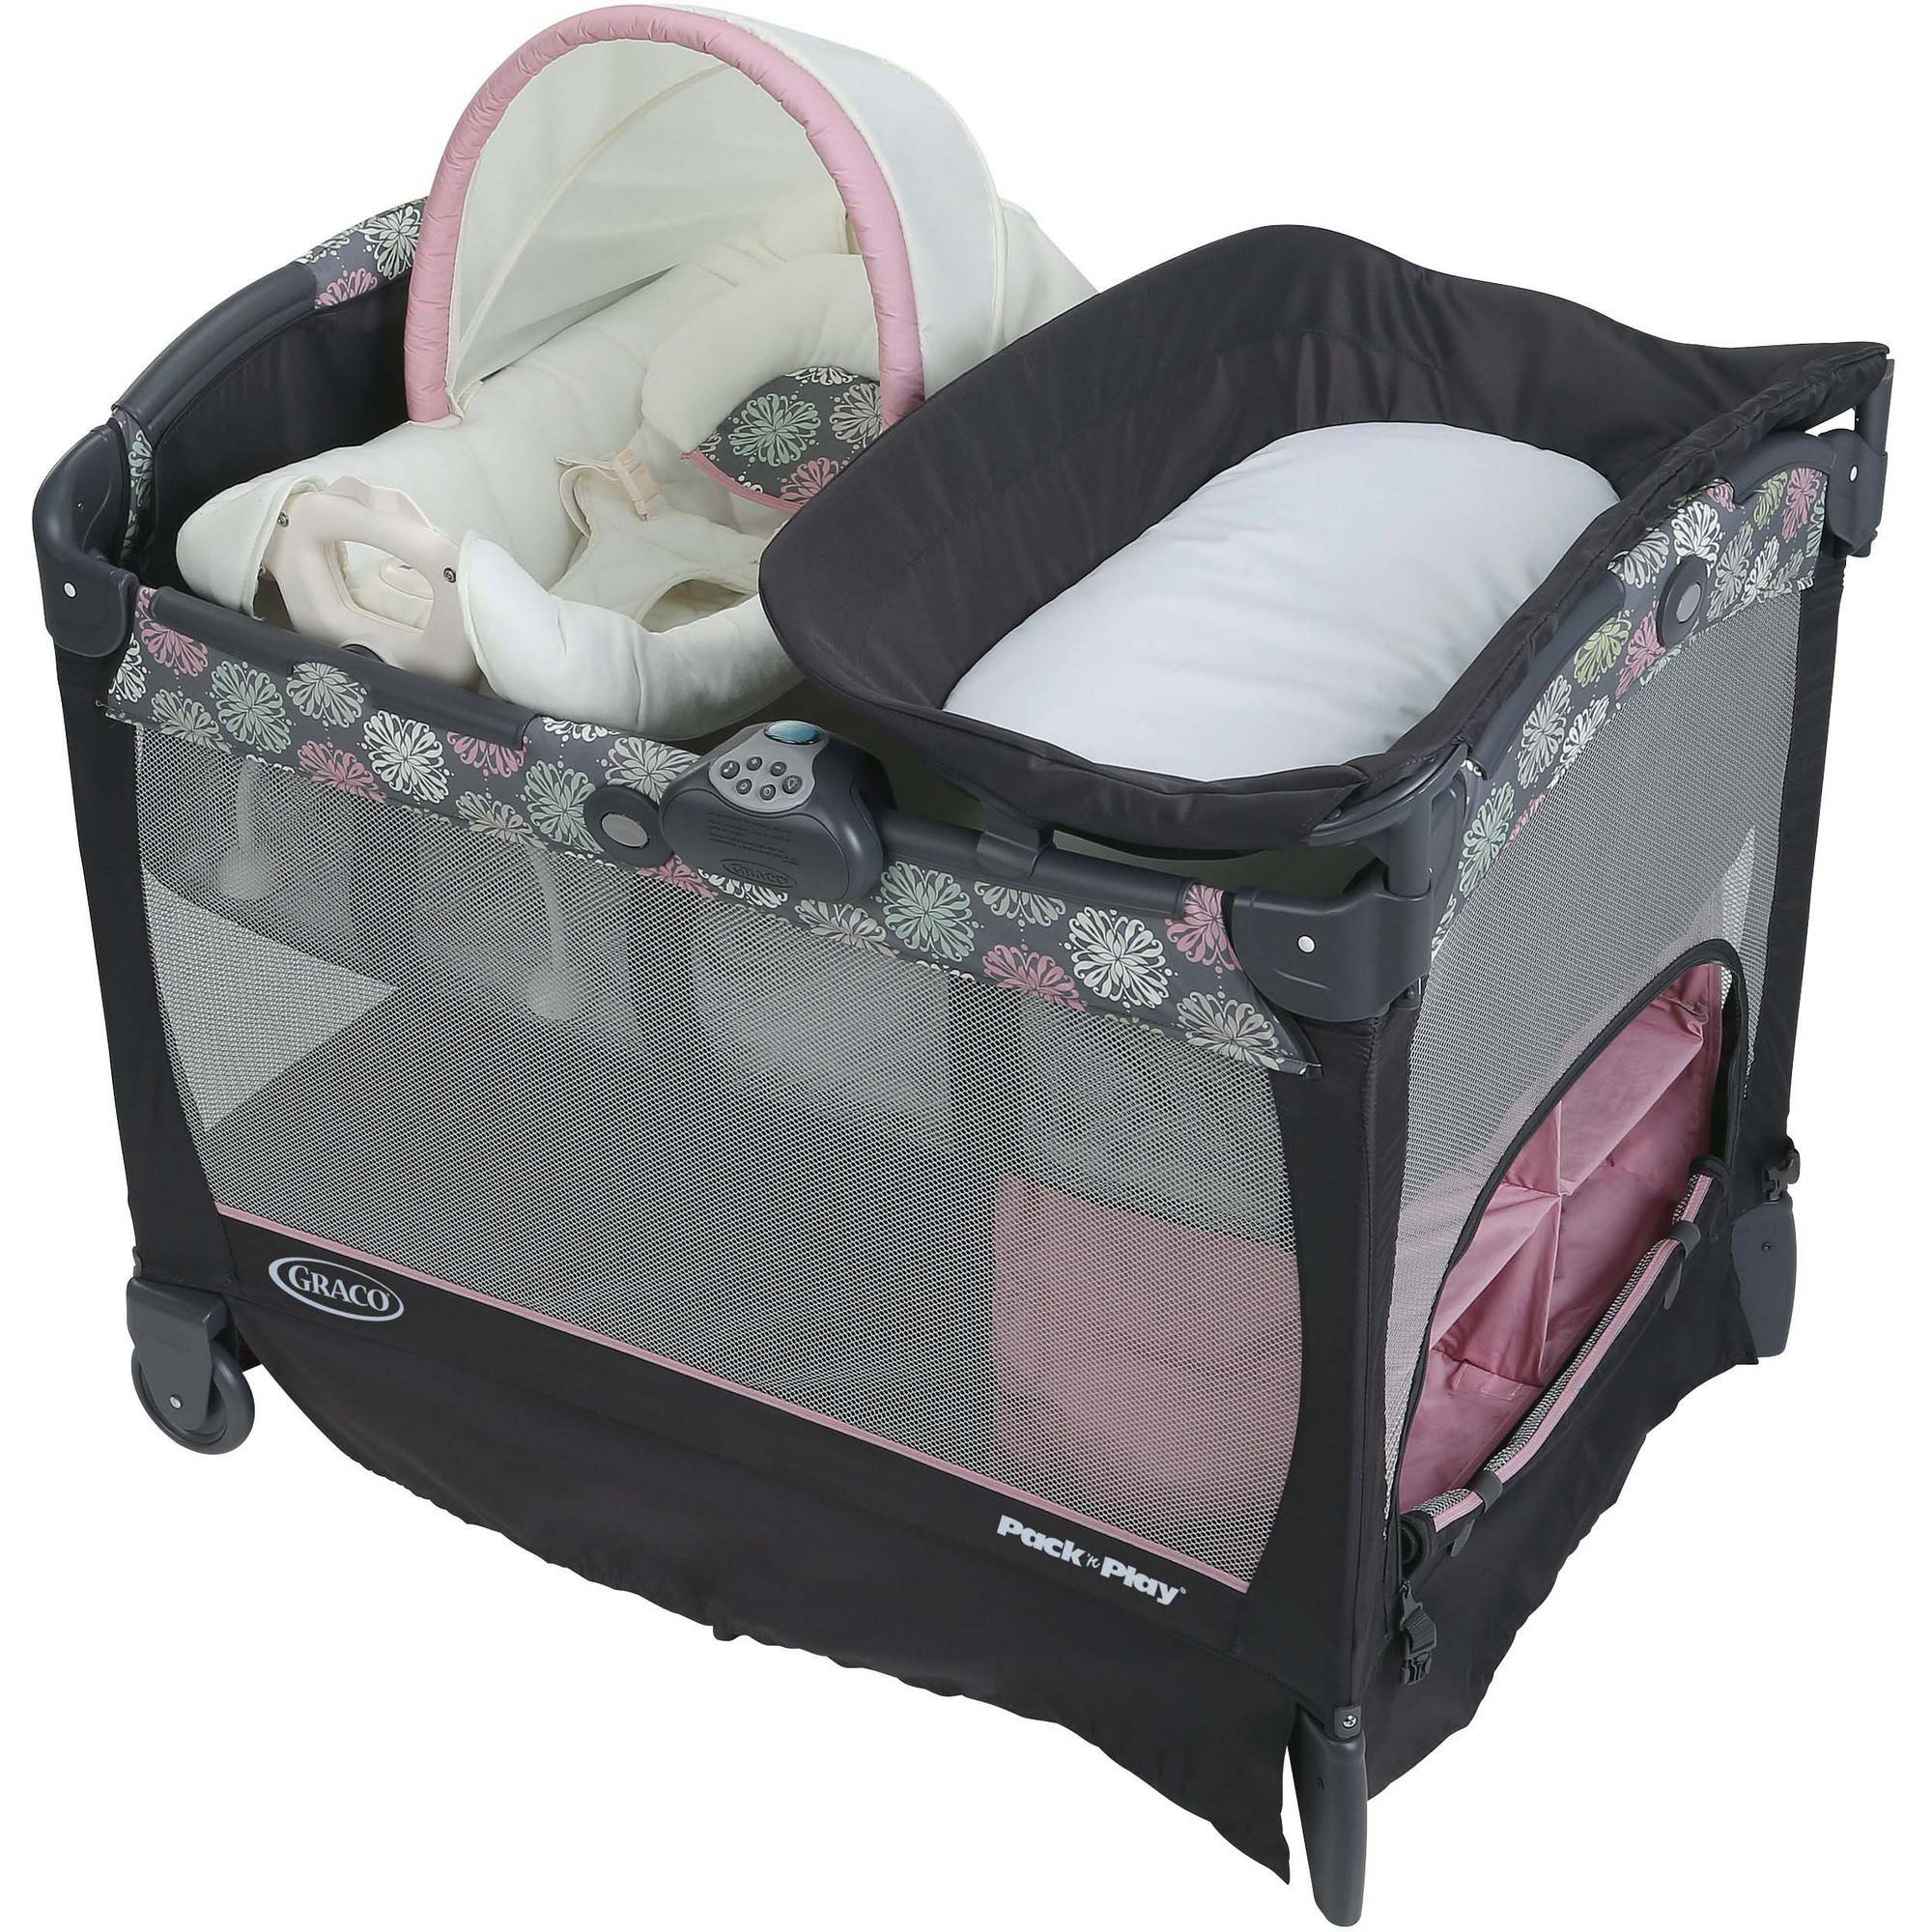 Graco Pack 'n Play with Cuddle Cove Baby Seat, Addison